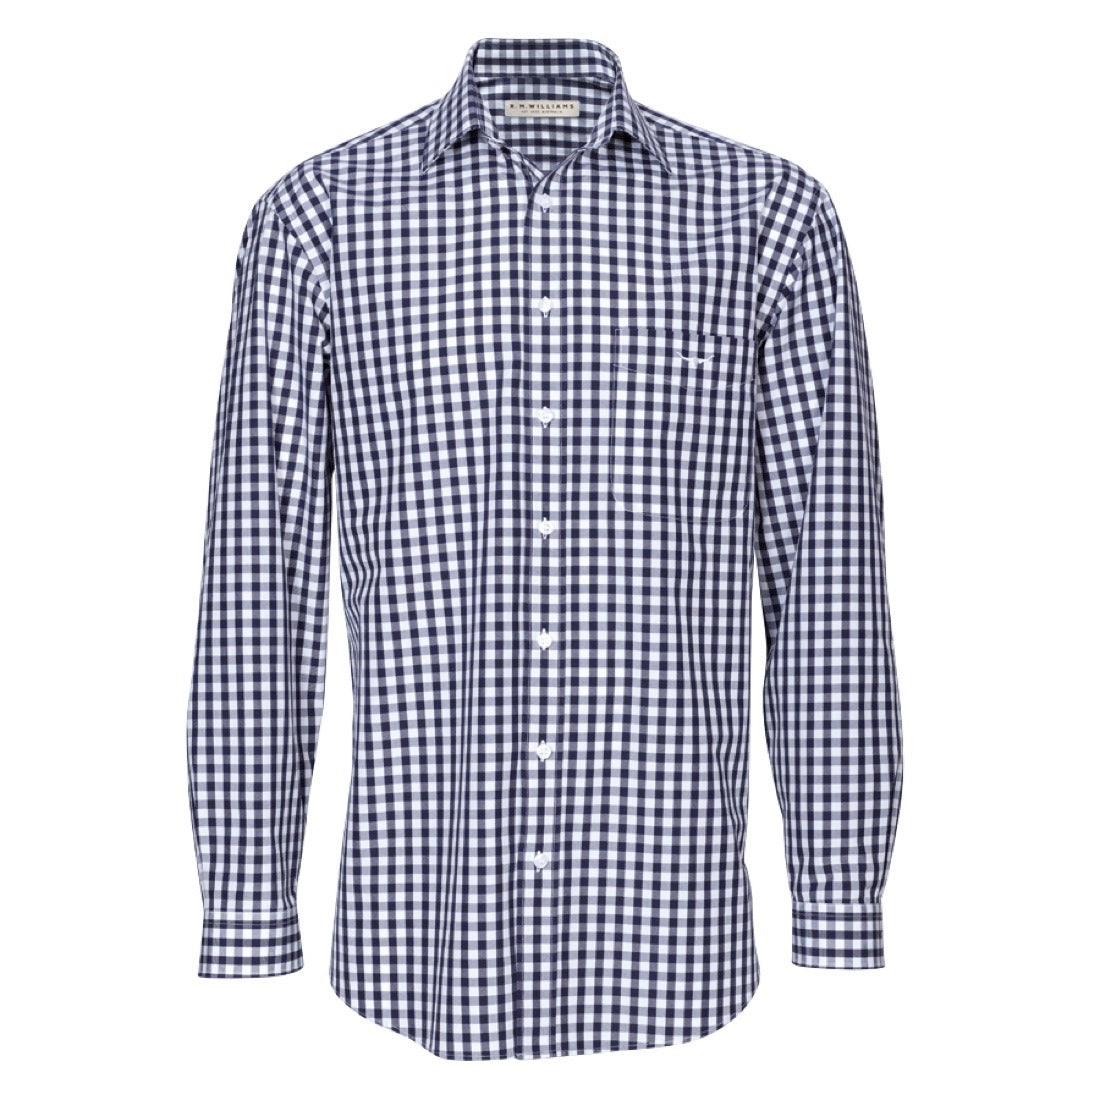 R.M.Williams Collins Shirt Navy/White Check Big Men